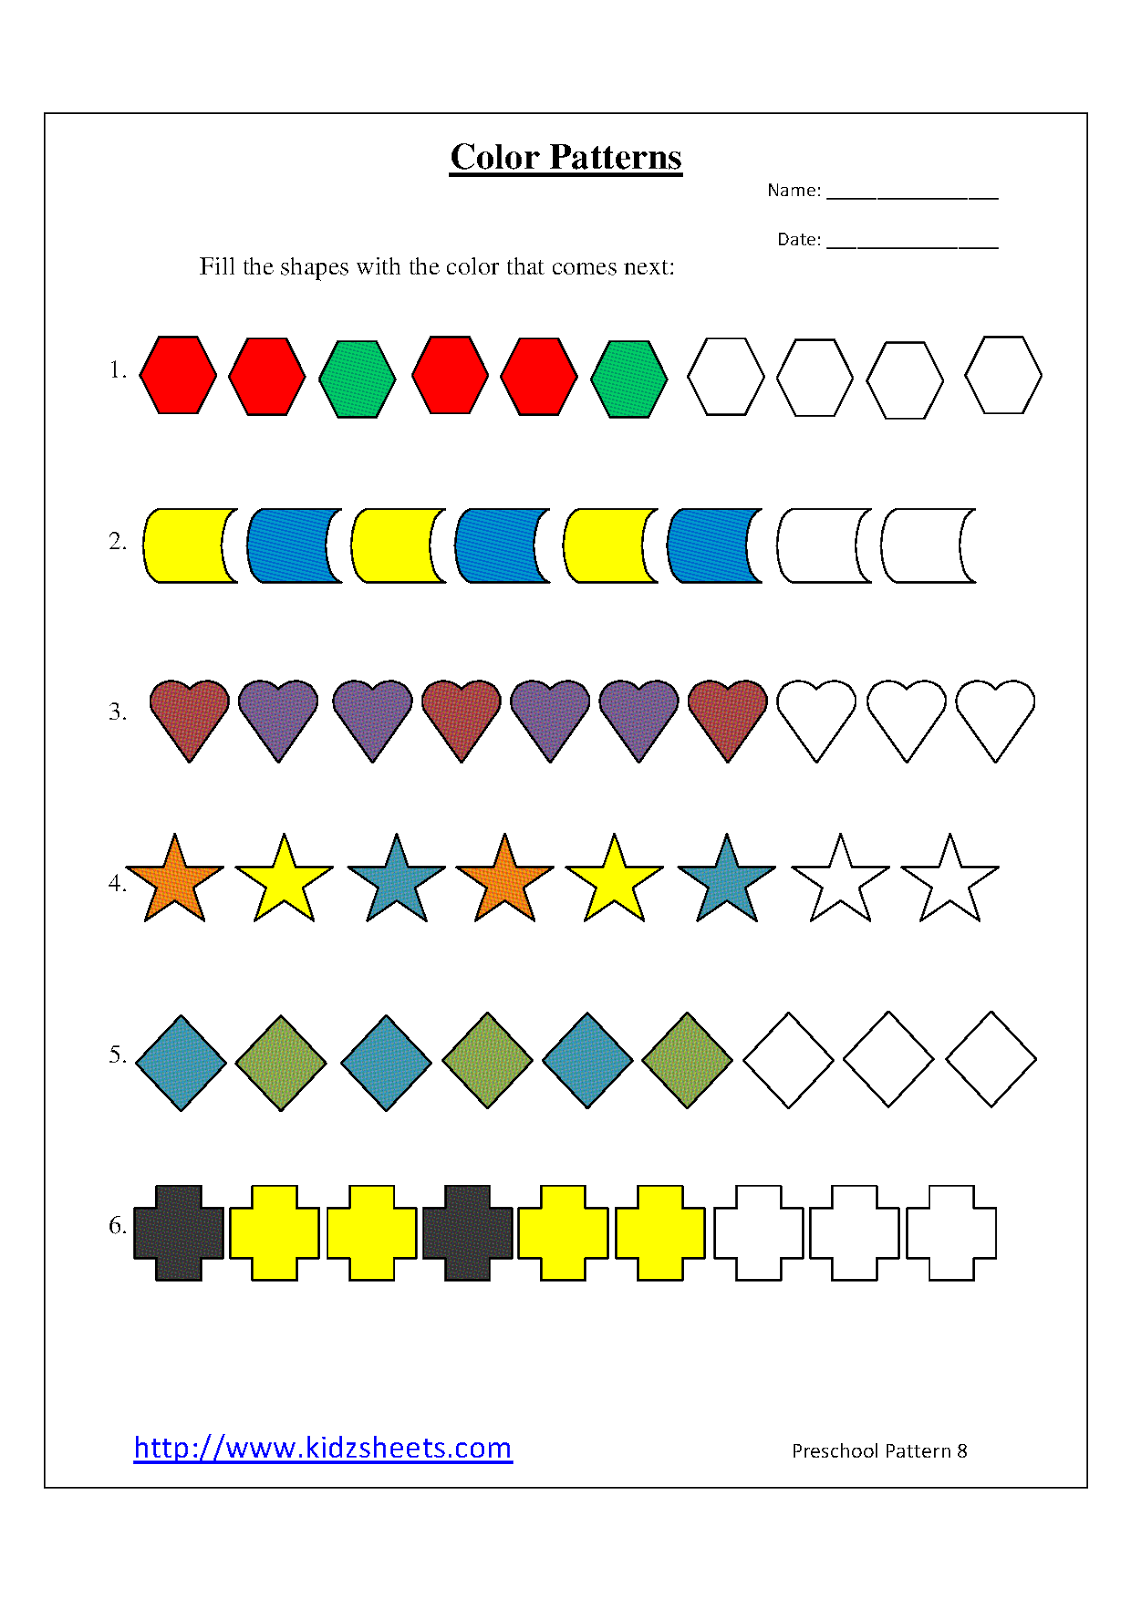 Printables Preschool Pattern Worksheets kidz worksheets preschool color patterns worksheet8 patterns